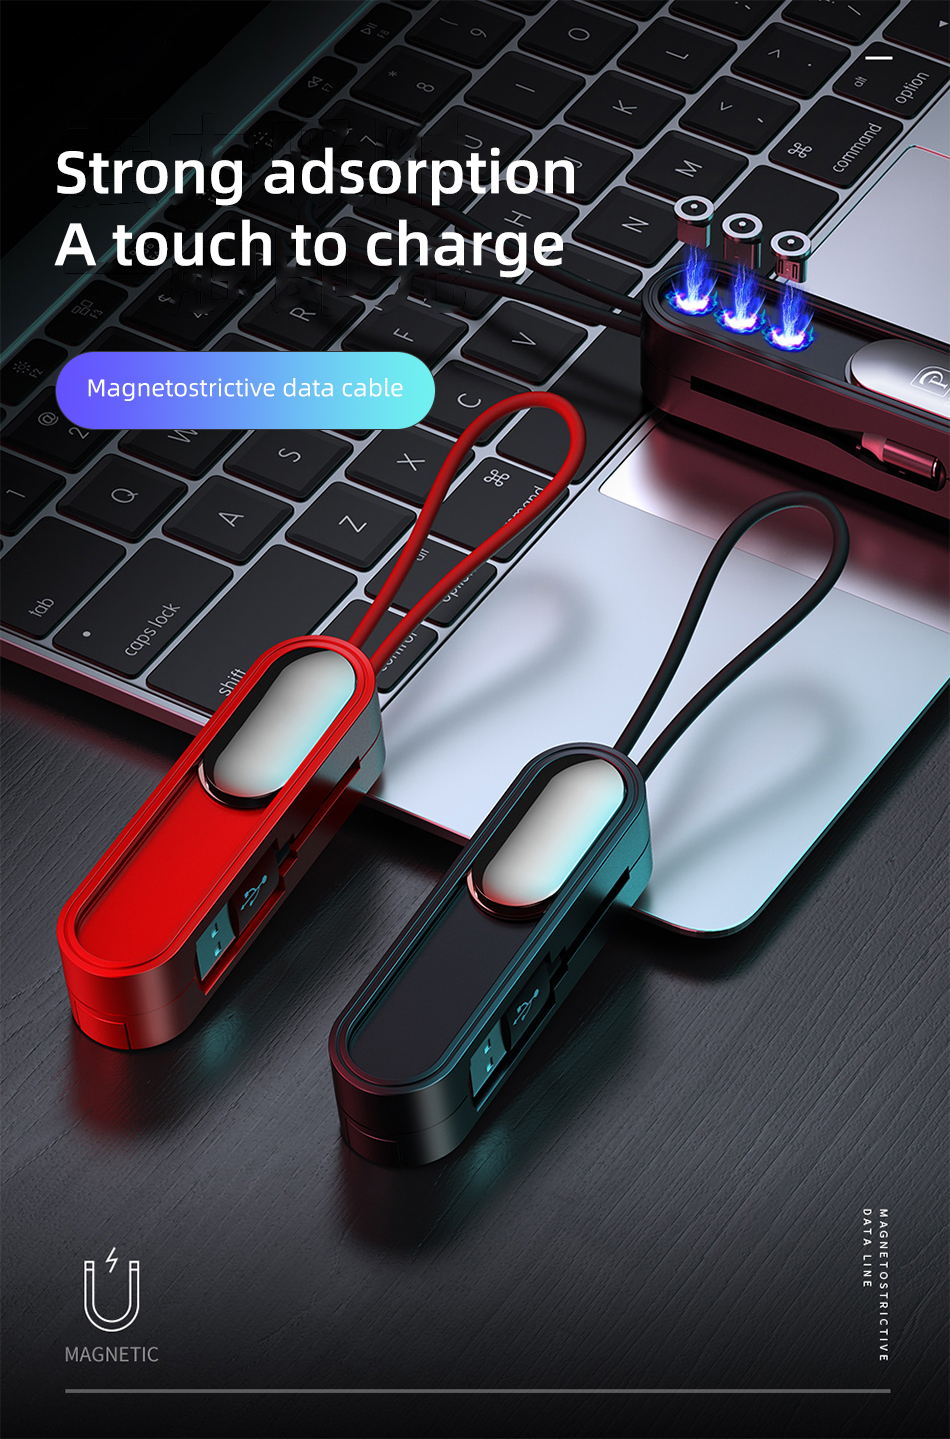 !ACCEZZ 3 in 1 Short Magnetic USB Cable With Magnetic Plug Box Storage For iPhone 11 Pro XS MAX XR X Huawei Xiaomi Charging Wire (2)